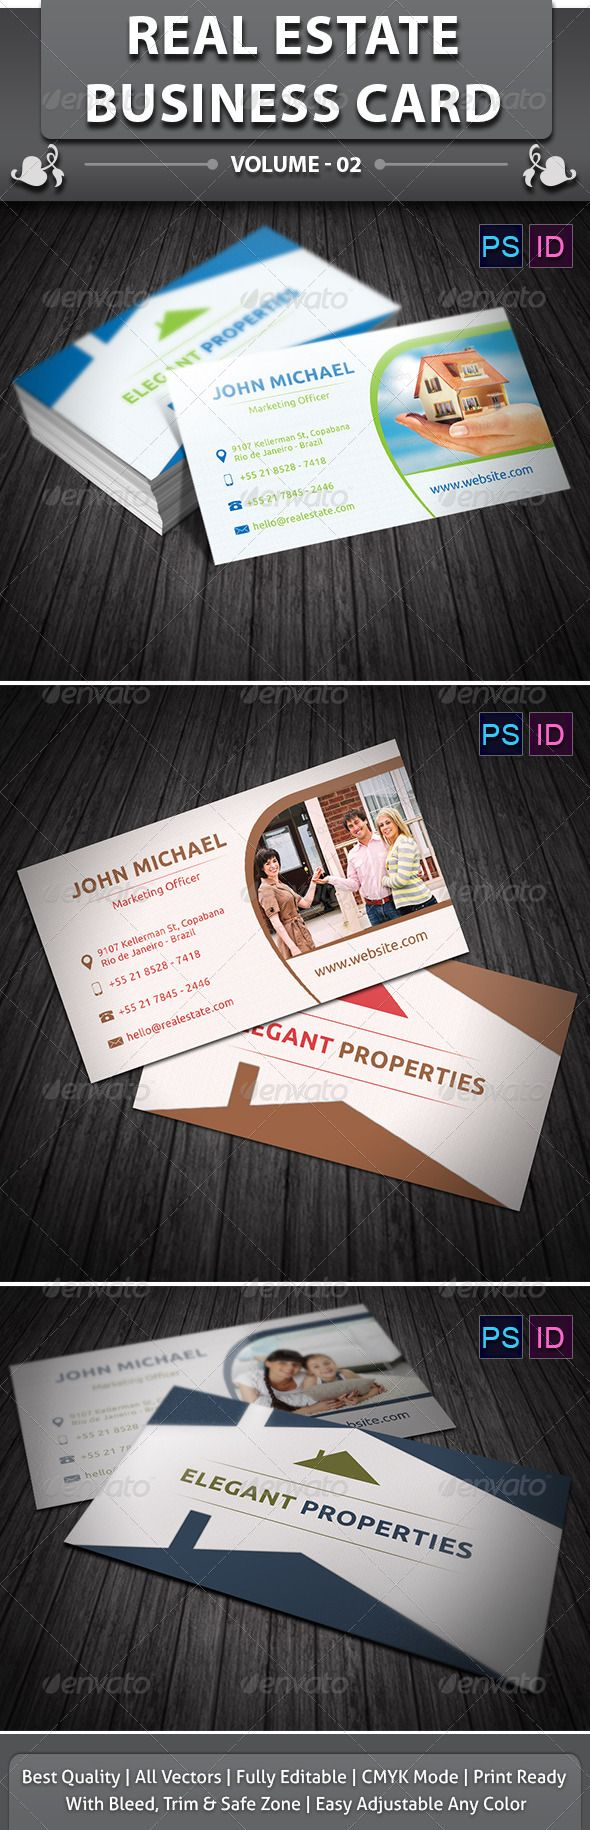 64 best real estate agent card examples images on pinterest real estate business card v2 reheart Images